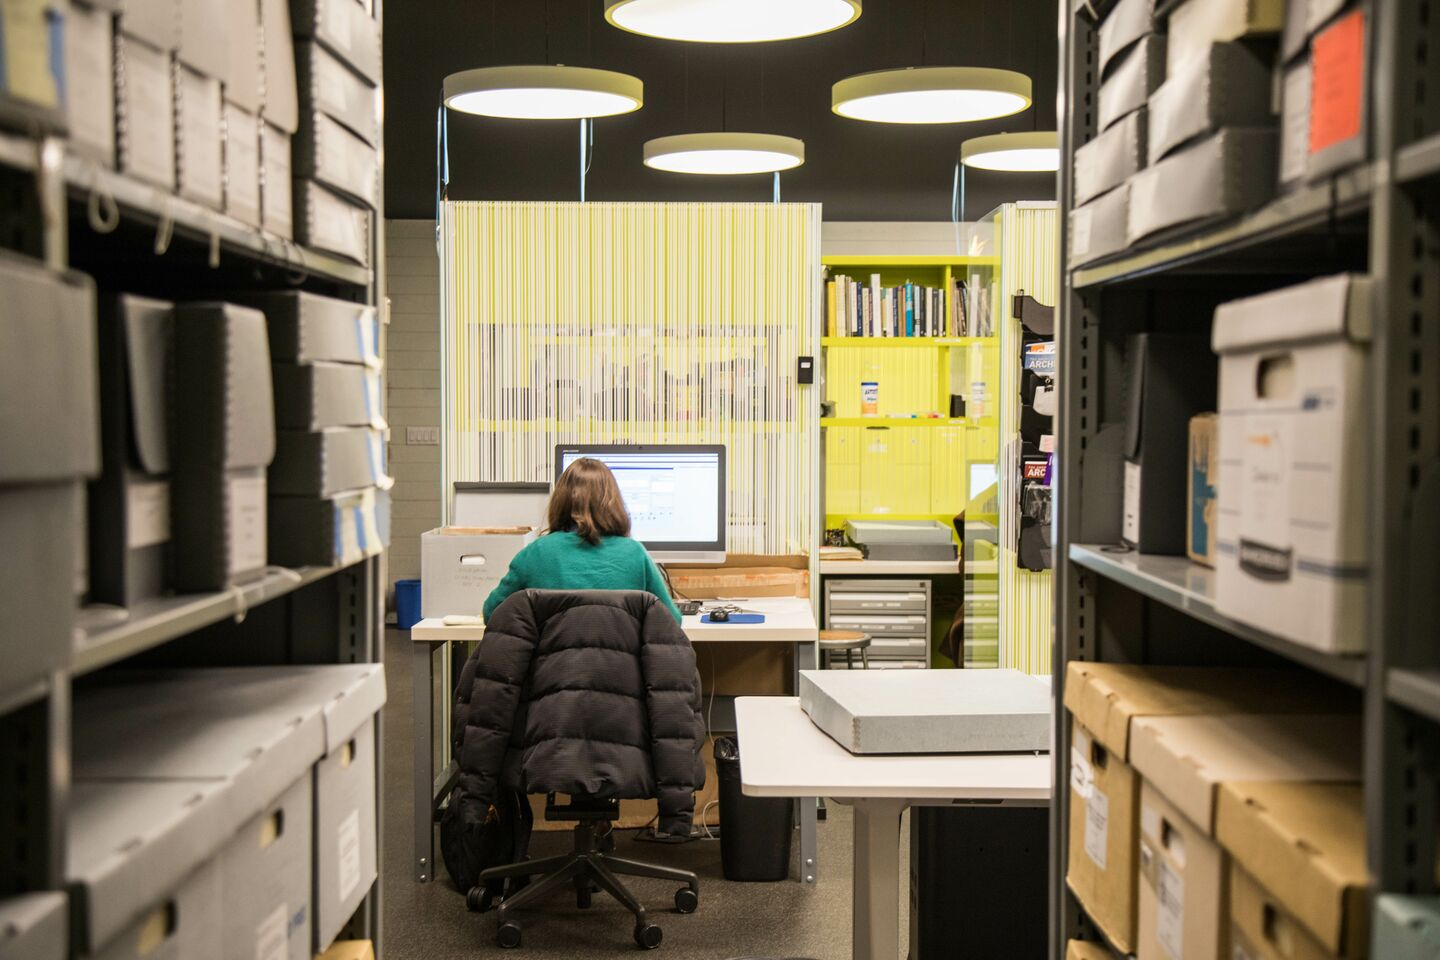 The New School's Archives and Special Collections